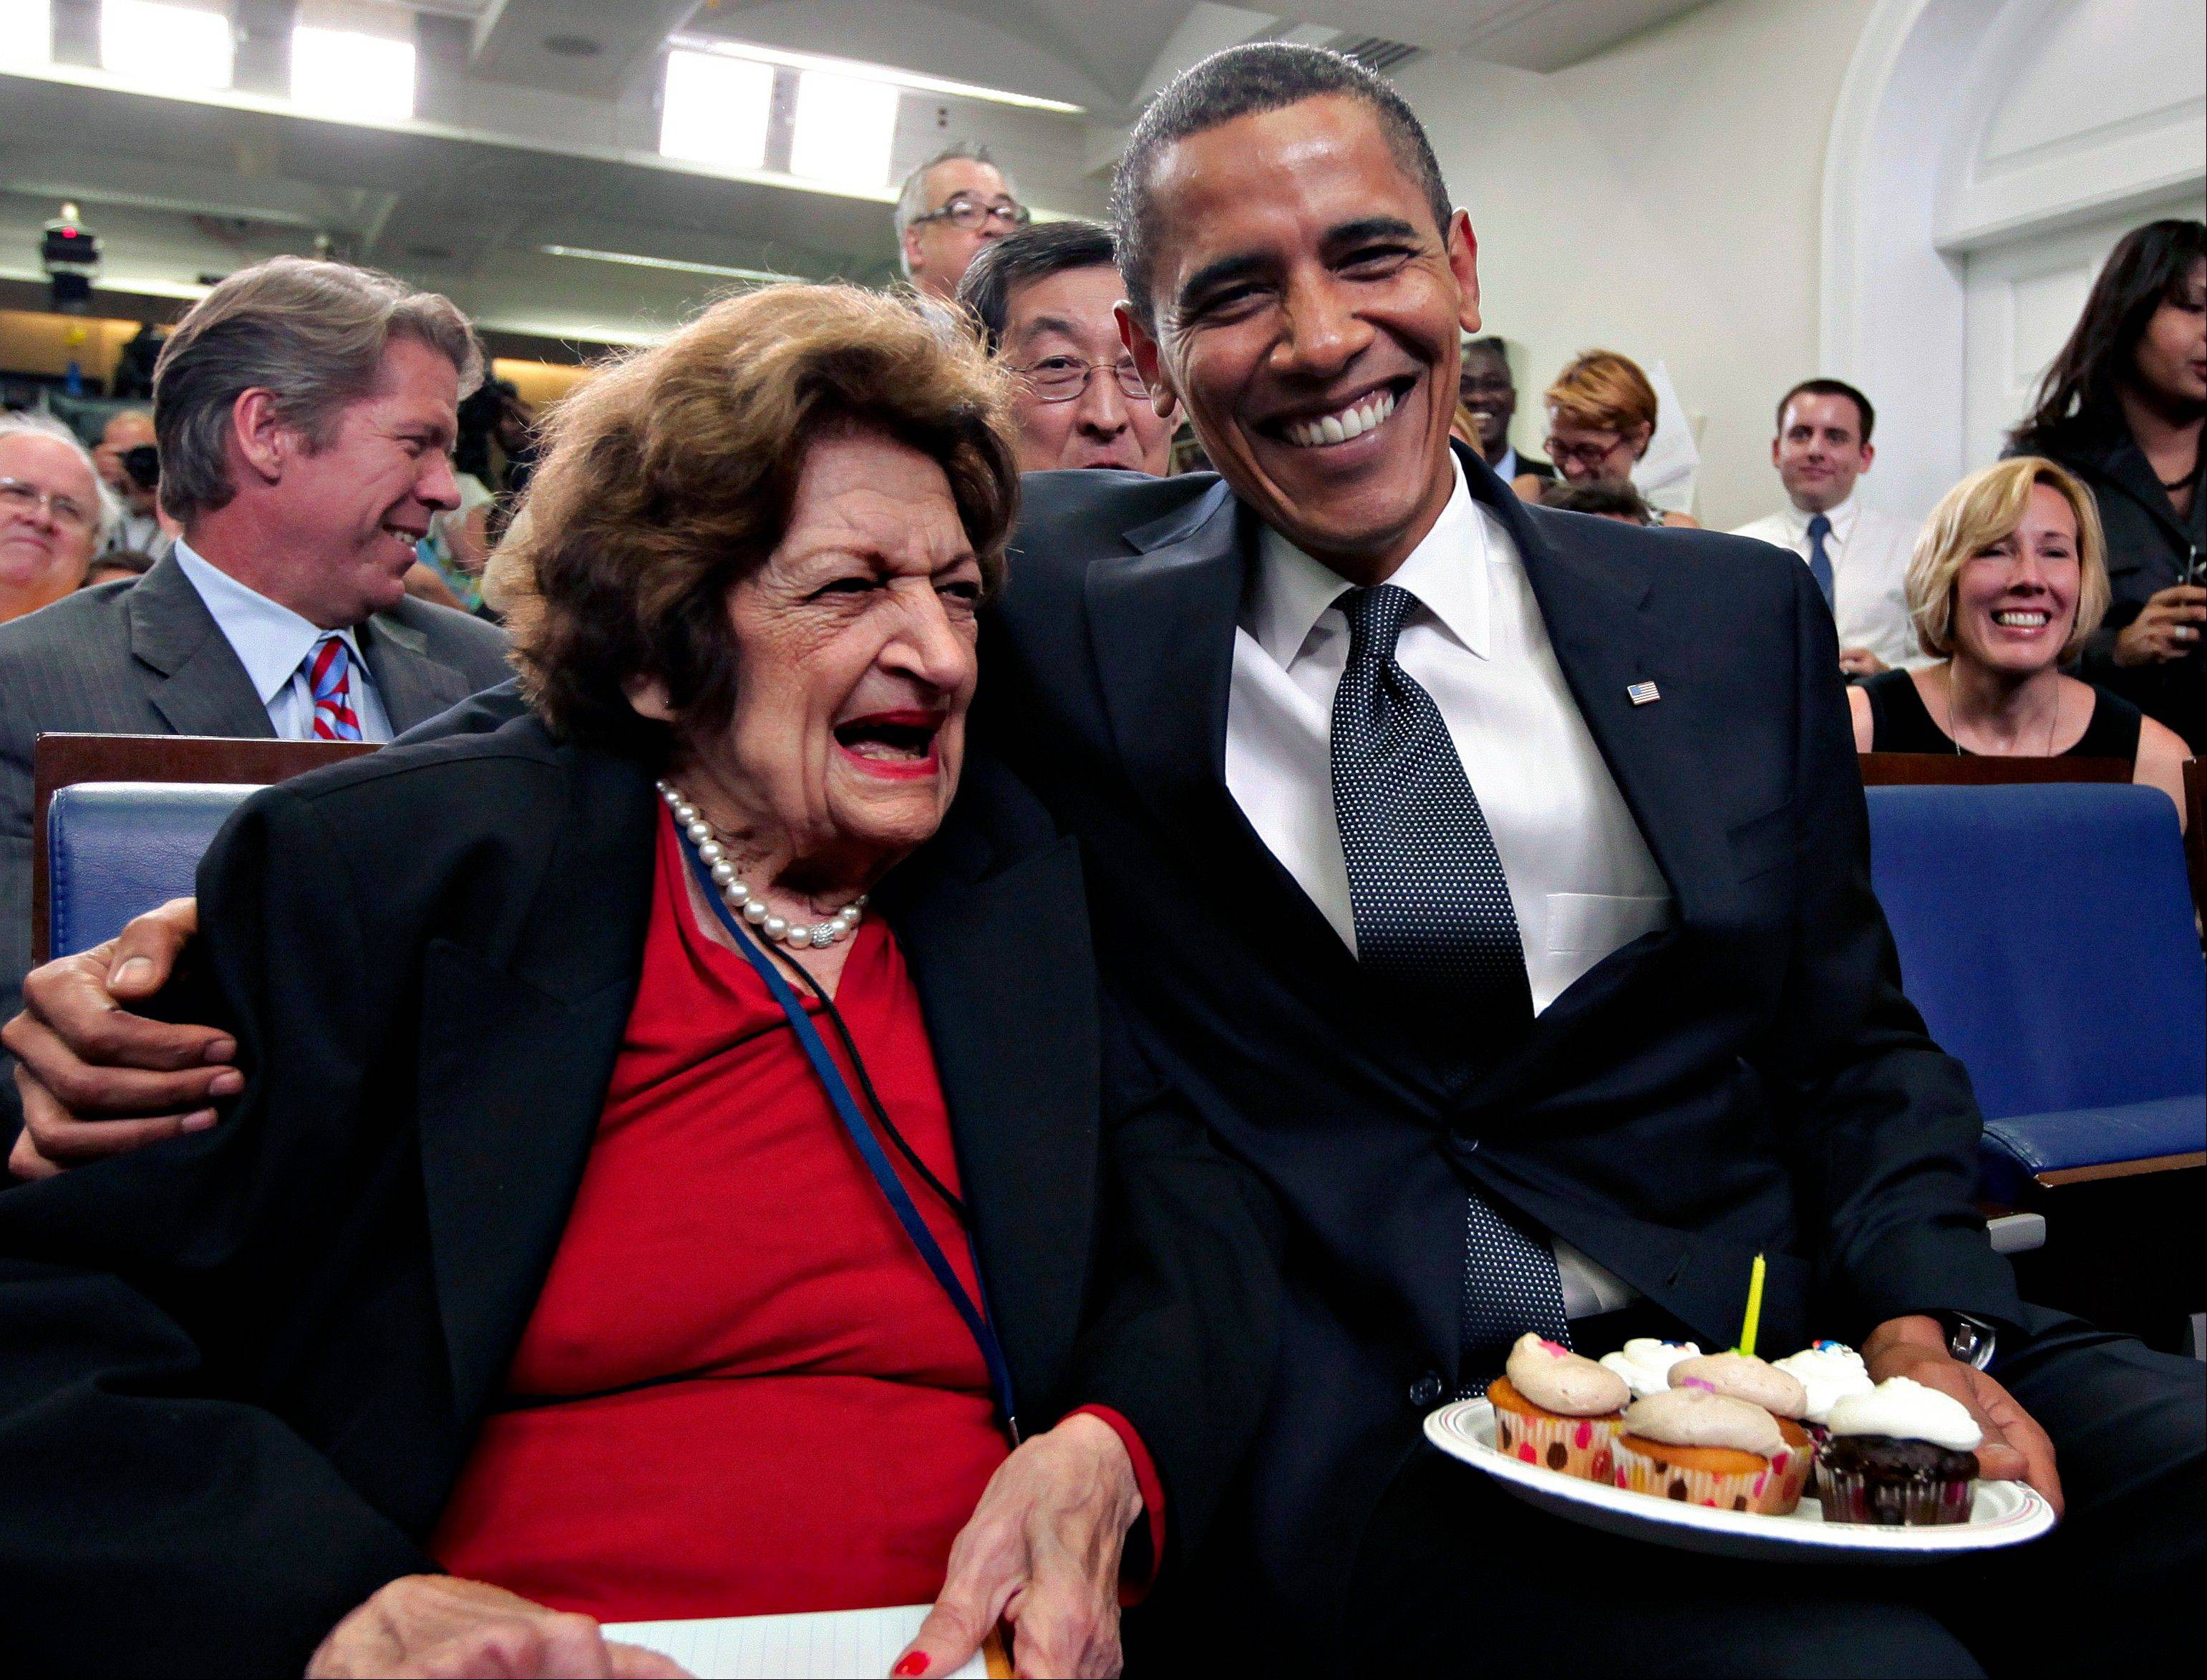 Associated PressIn this Aug. 4, 2009, file photo, veteran White House reporter Helen Thomas, left, celebrates her 89th birthday with President Barack Obama, celebrating his 48th birthday, in the White House Press Briefing Room in Washington. Thomas, a pioneer for women in journalism and an irrepressible White House correspondent, has died Saturday, July 20, 2013. She was 92.